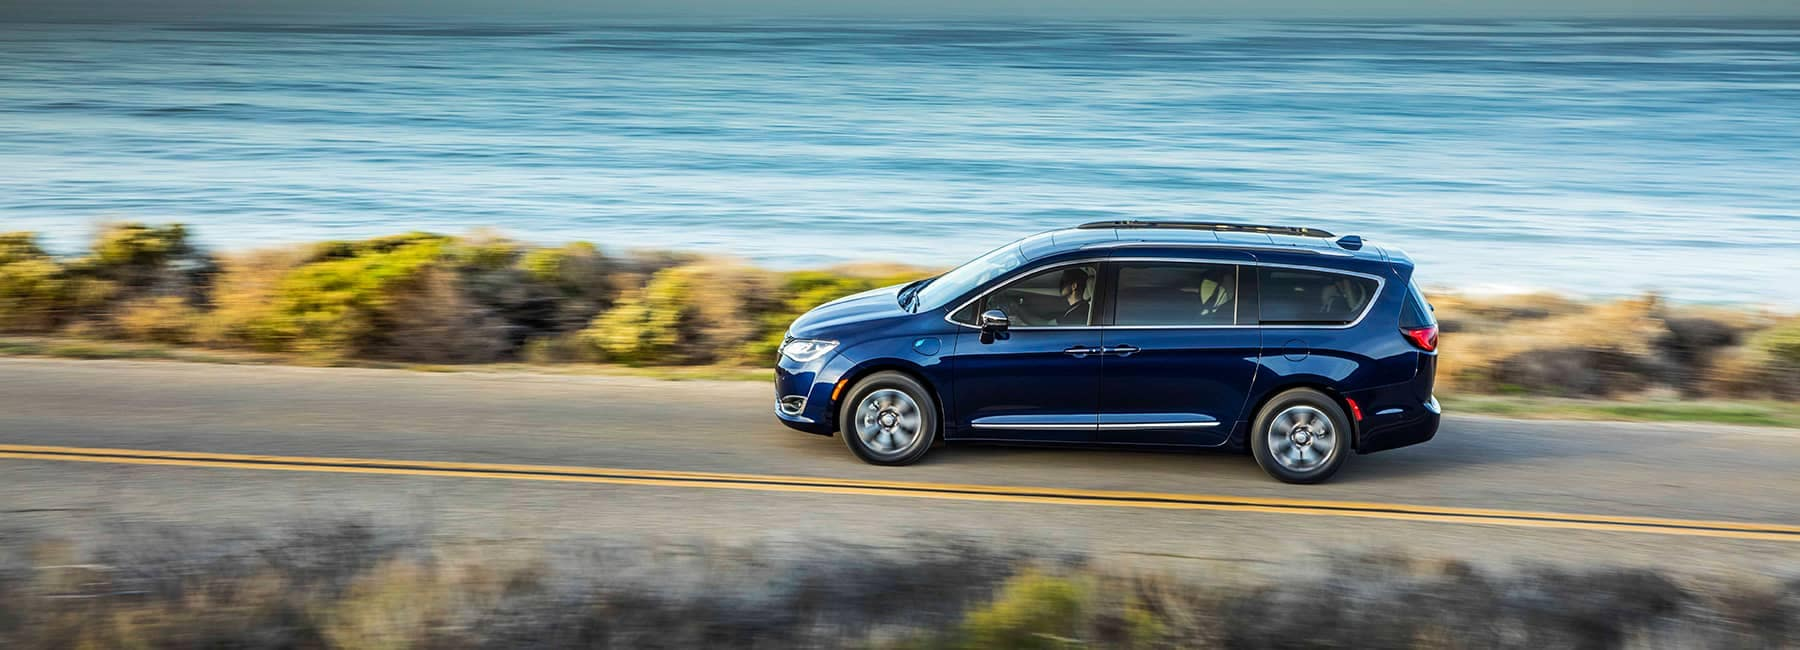 2018 Chrysler Pacifica 3